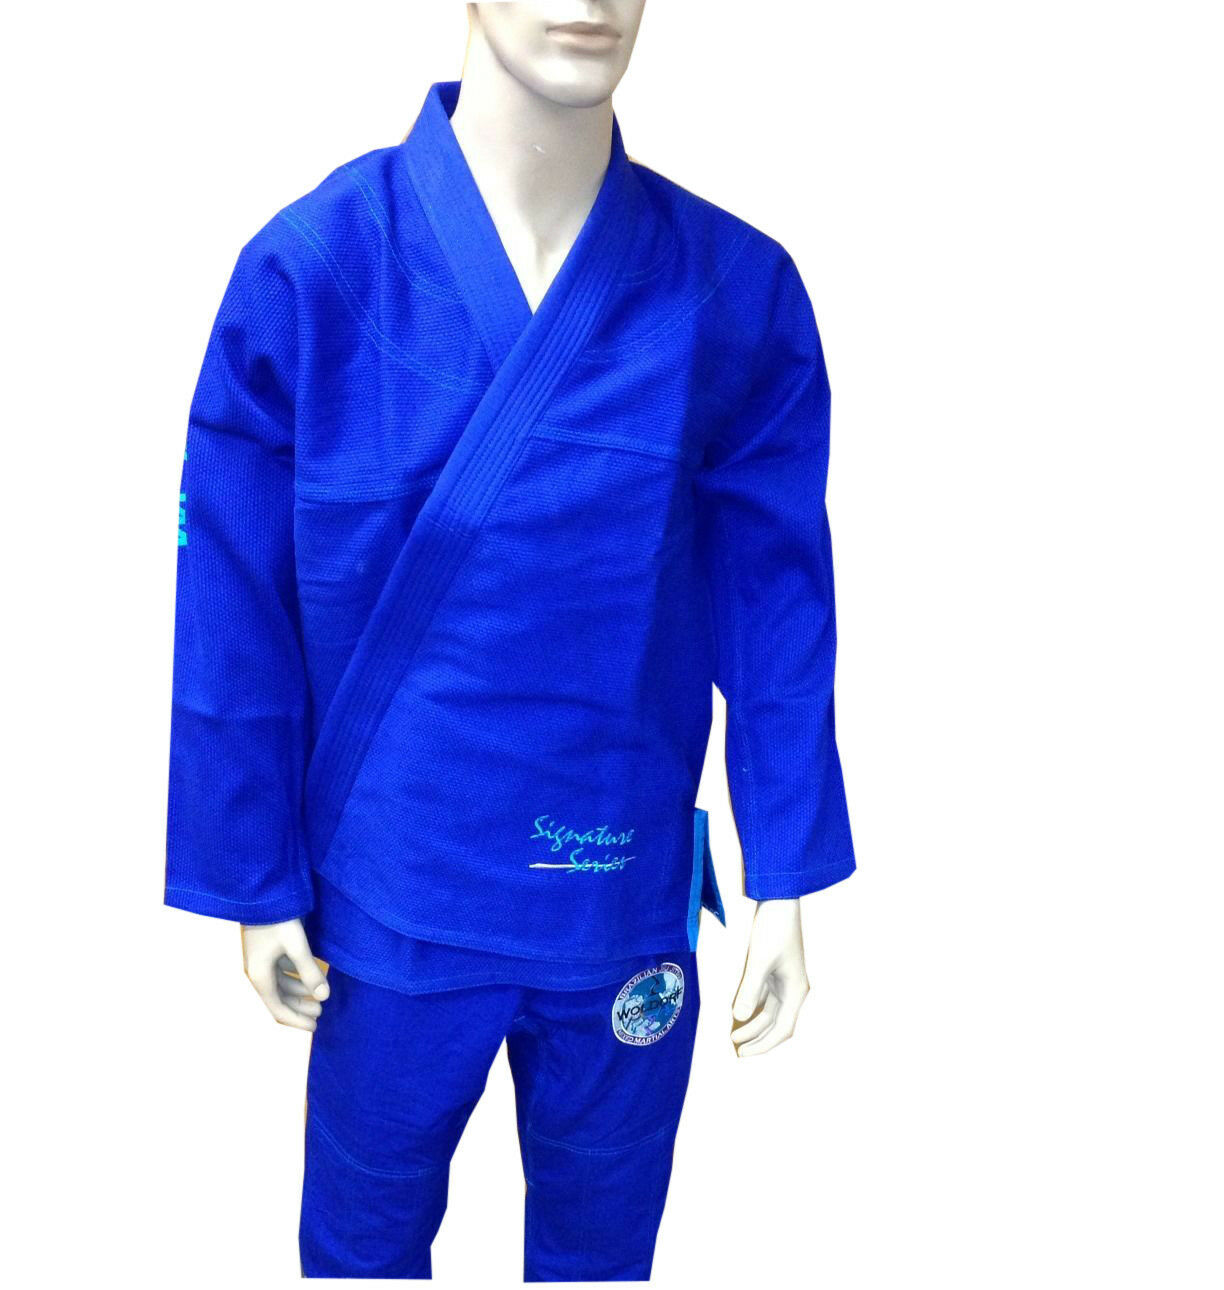 Woldorf USA Brazilian BJJ jiu jitsu uniform gi Pearl Weave competition